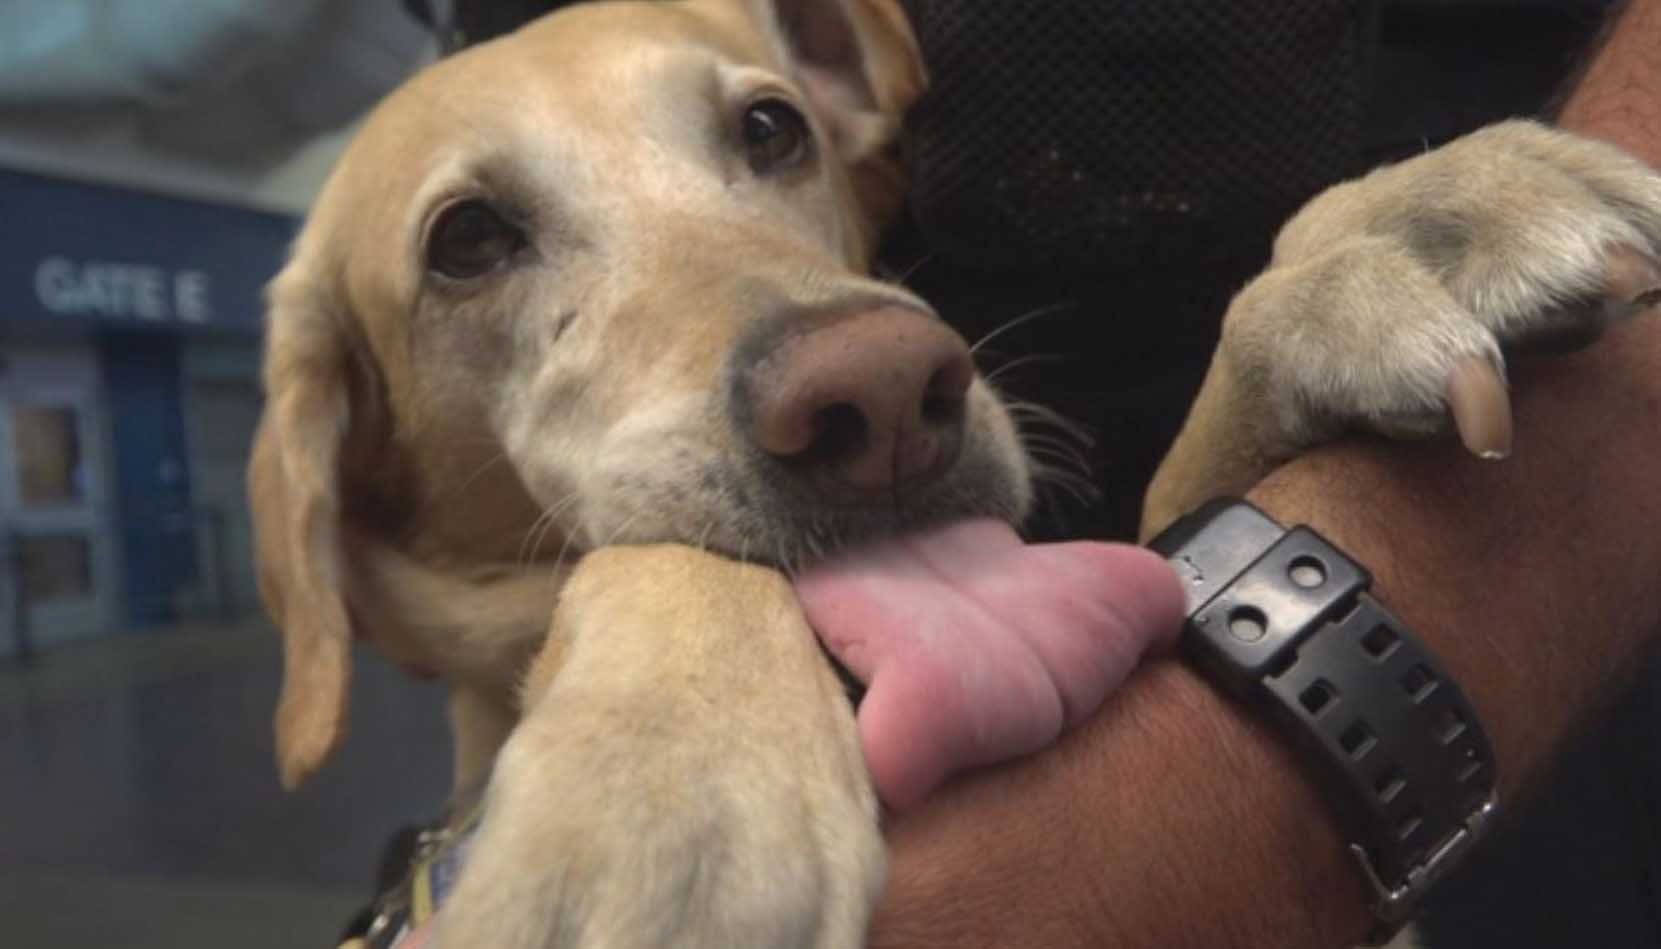 A retired military dog who now works as a bomb-sniffer at a train station is nominated for a prestigious award for saving thousands of lives in Afghanistan. (Source: WJLA via CNN)